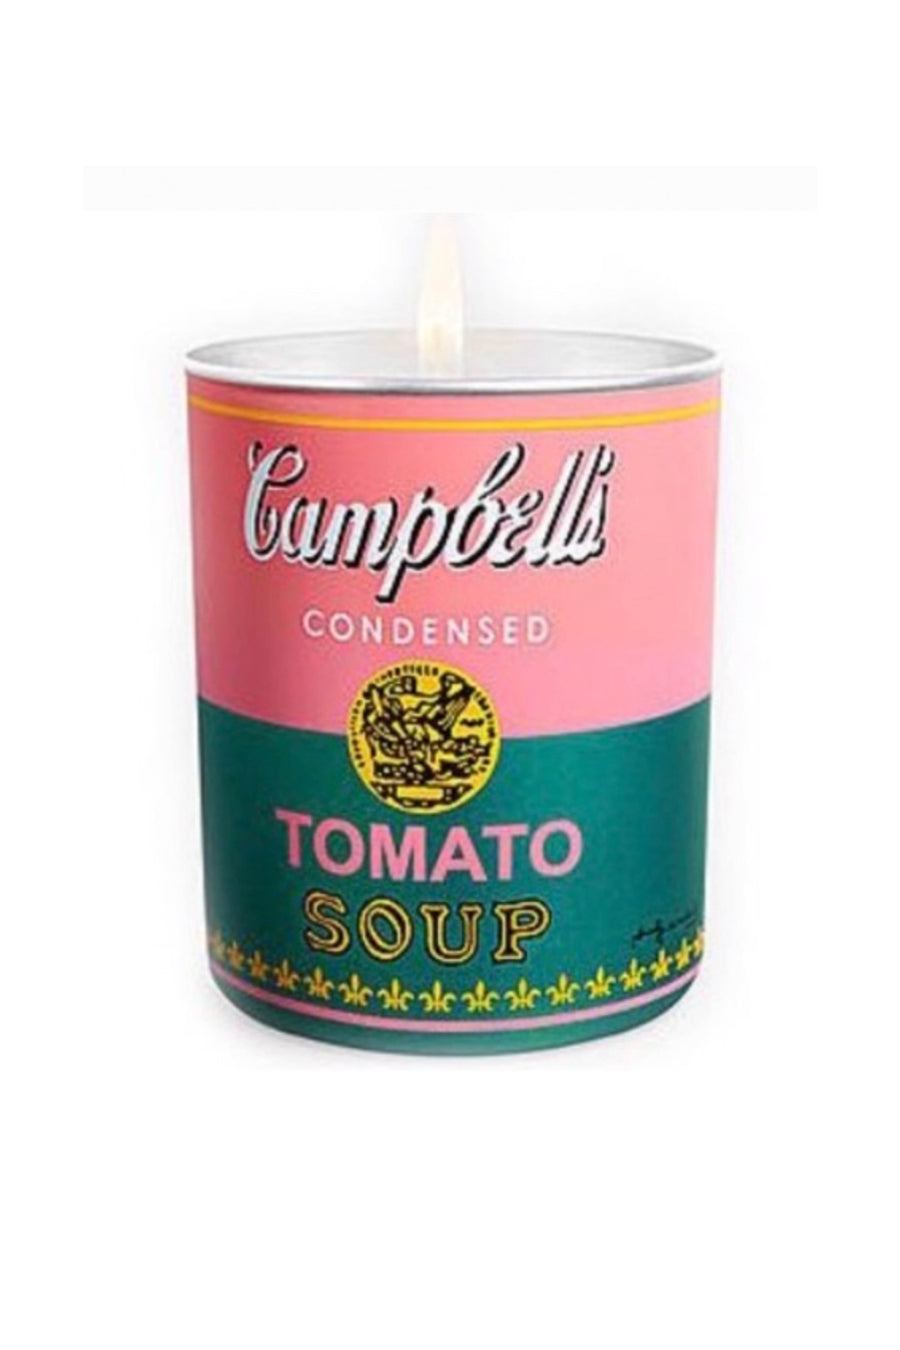 Andy Warhol Pink & Green Campbell Soup Candle